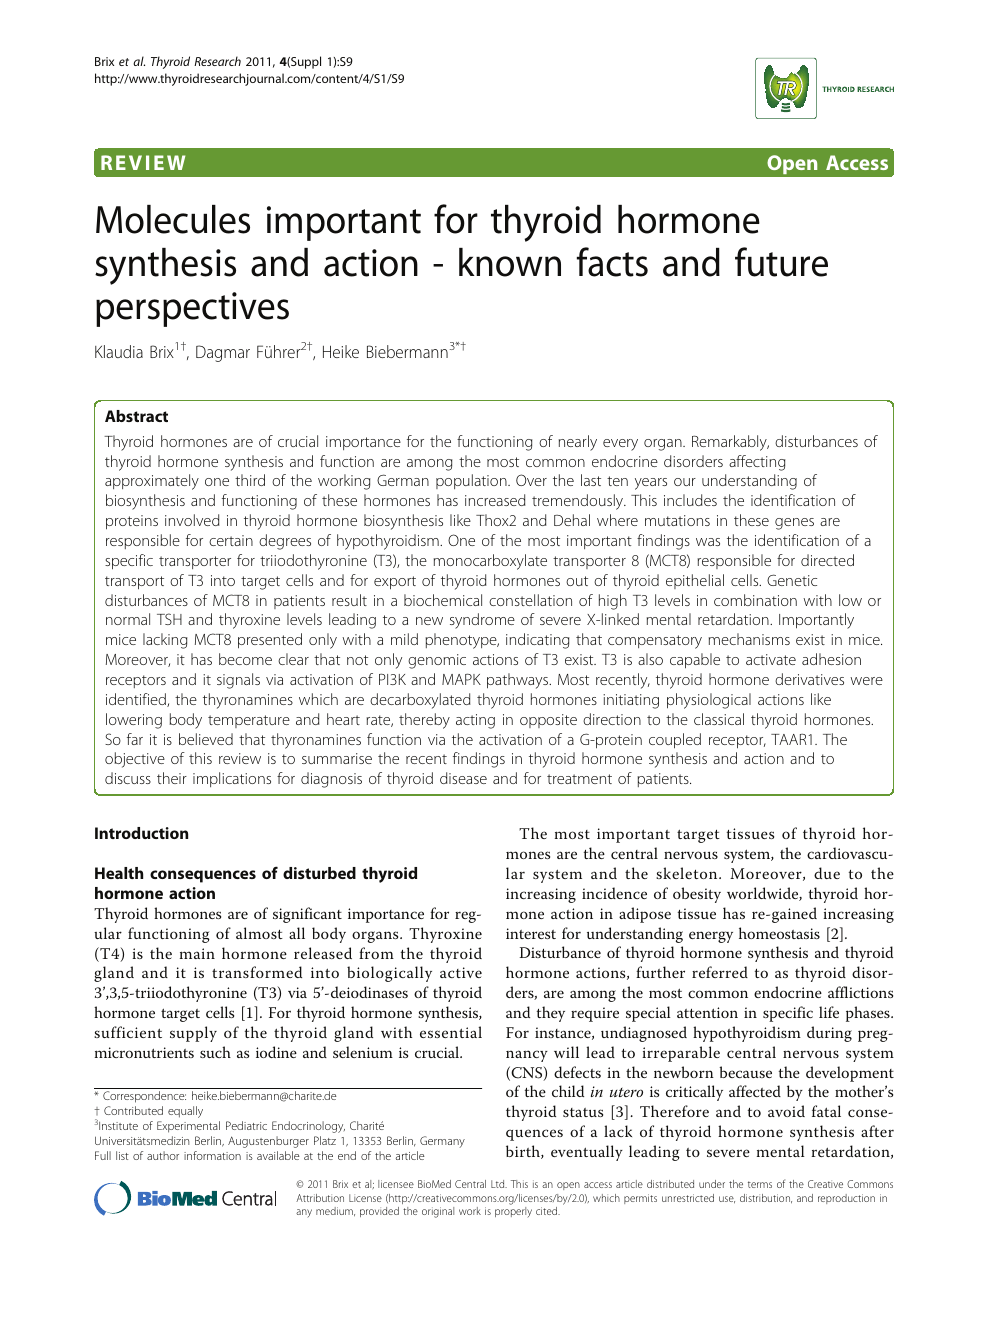 Molecules Important For Thyroid Hormone Synthesis And Action Known Facts And Future Perspectives Topic Of Research Paper In Clinical Medicine Download Scholarly Article Pdf And Read For Free On Cyberleninka